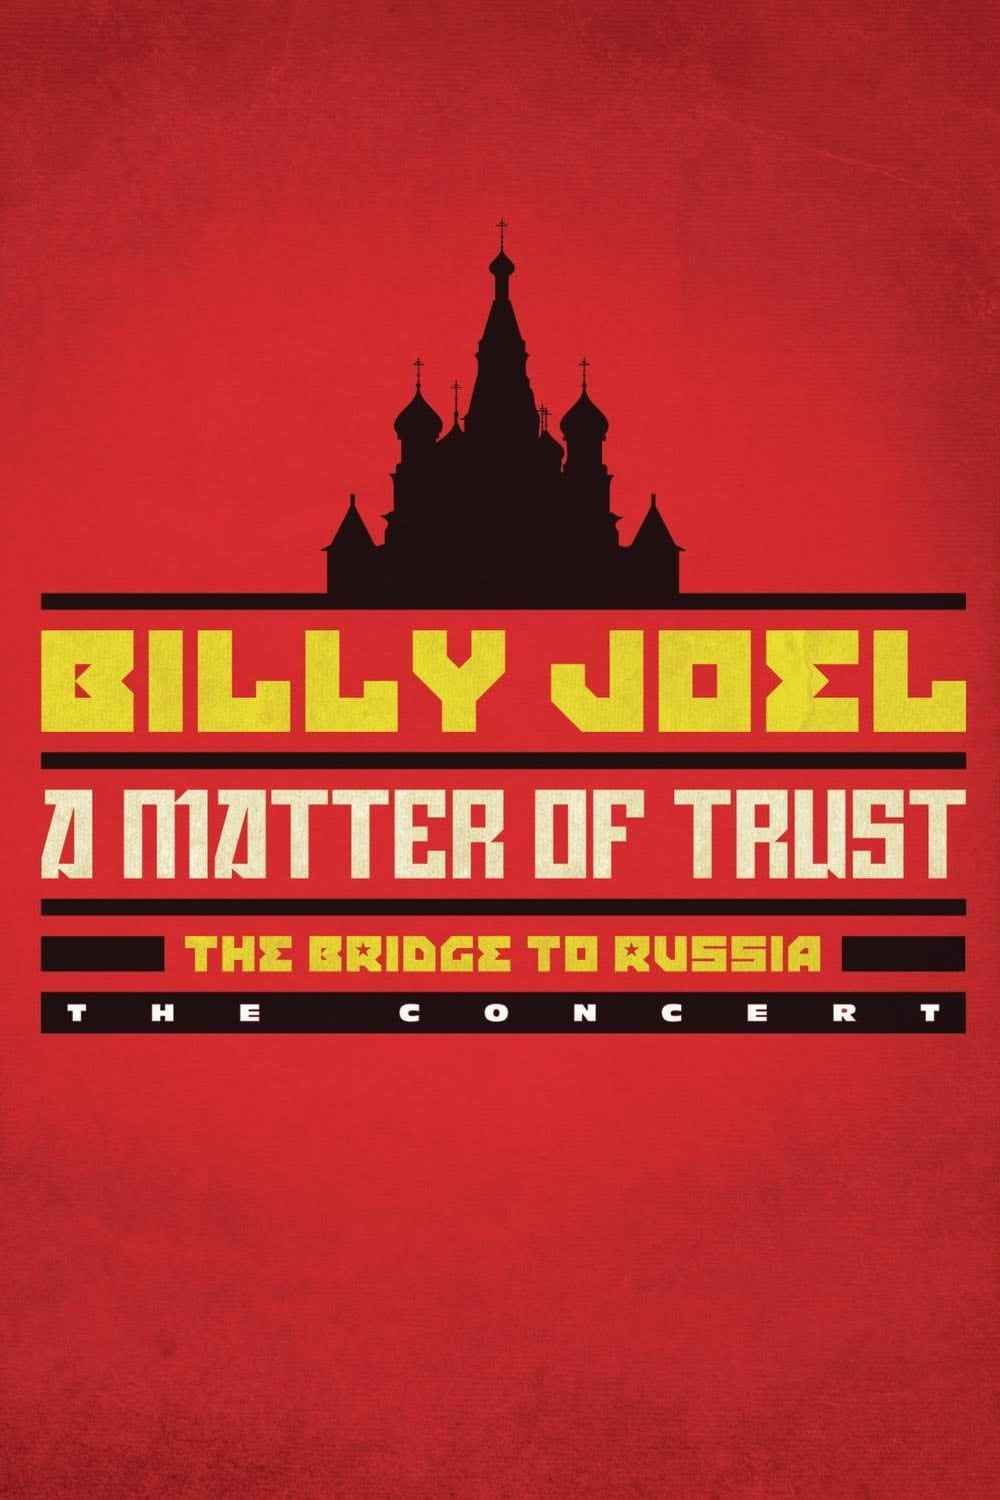 Billy Joel: A Matter of Trust - The Bridge to Russia (2014)